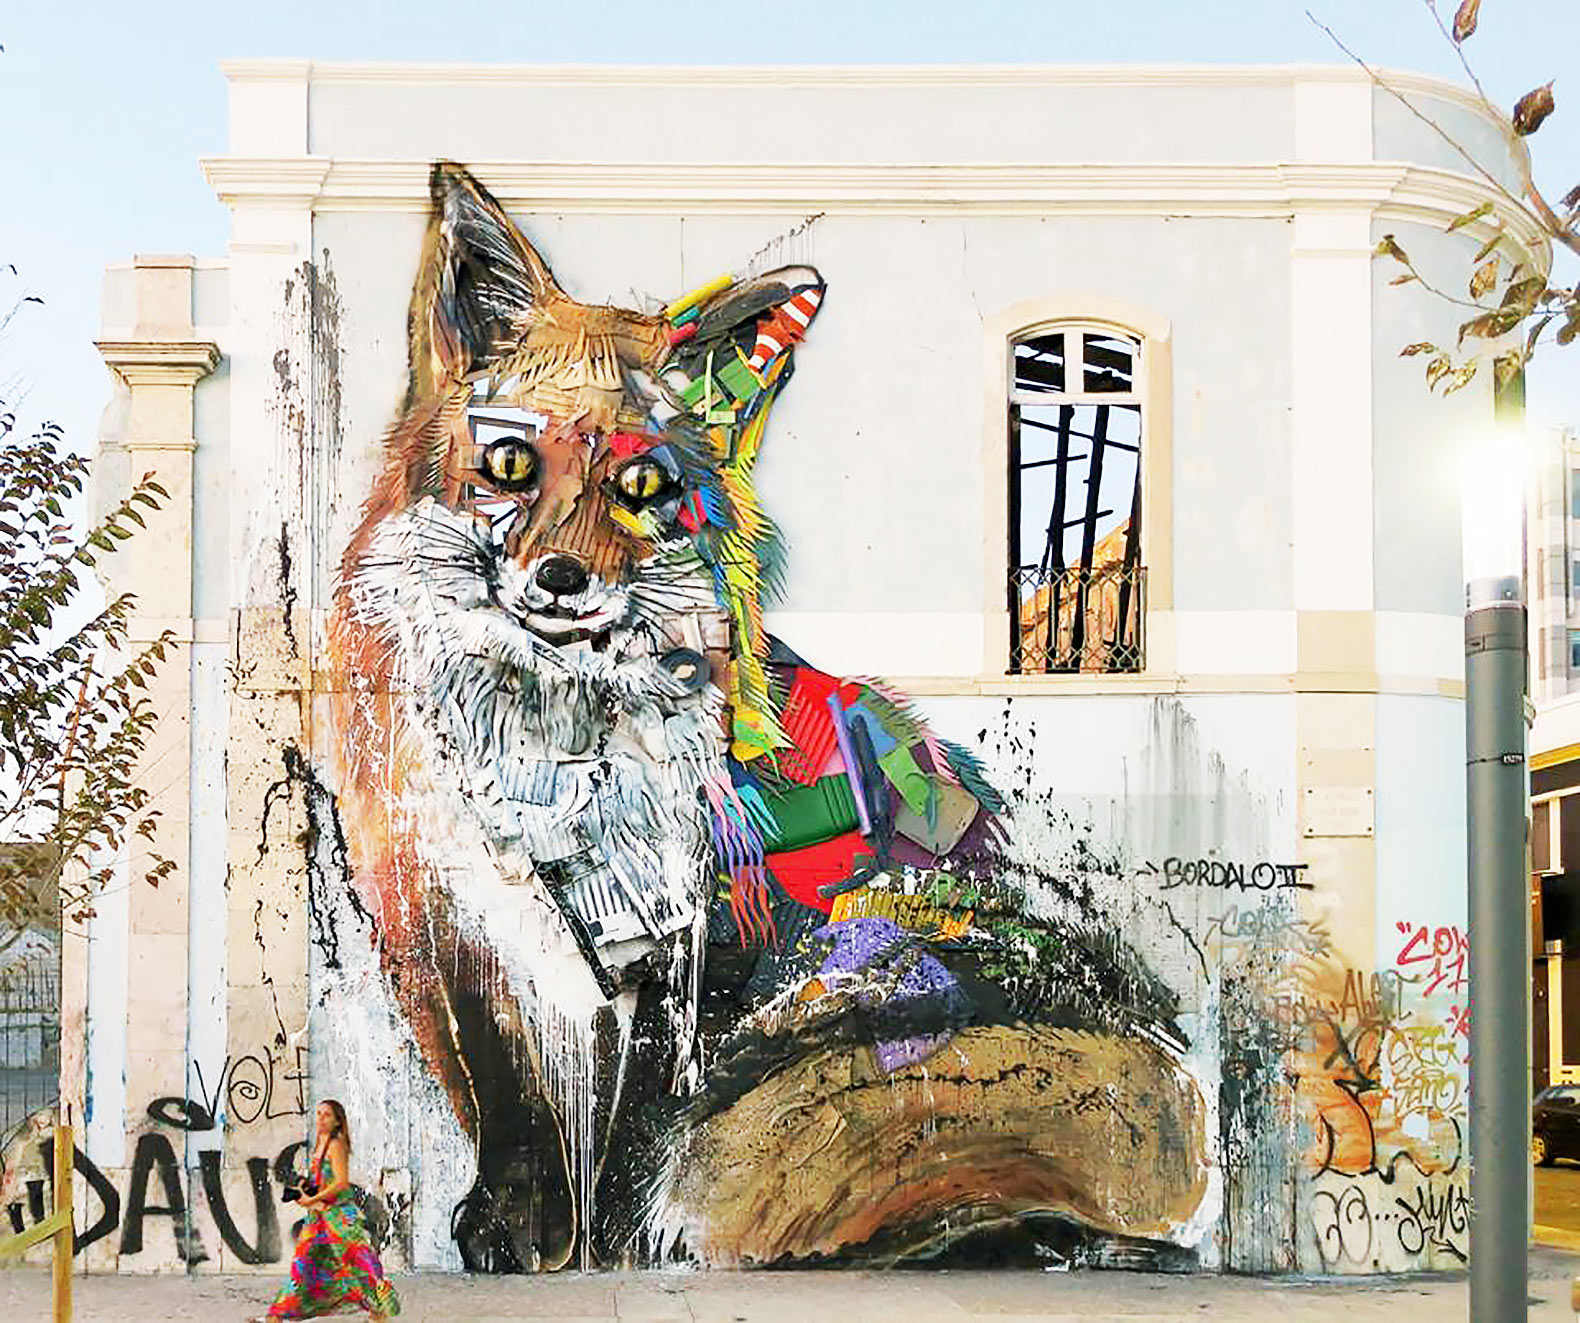 This breathtaking new street art is made entirely out of trash